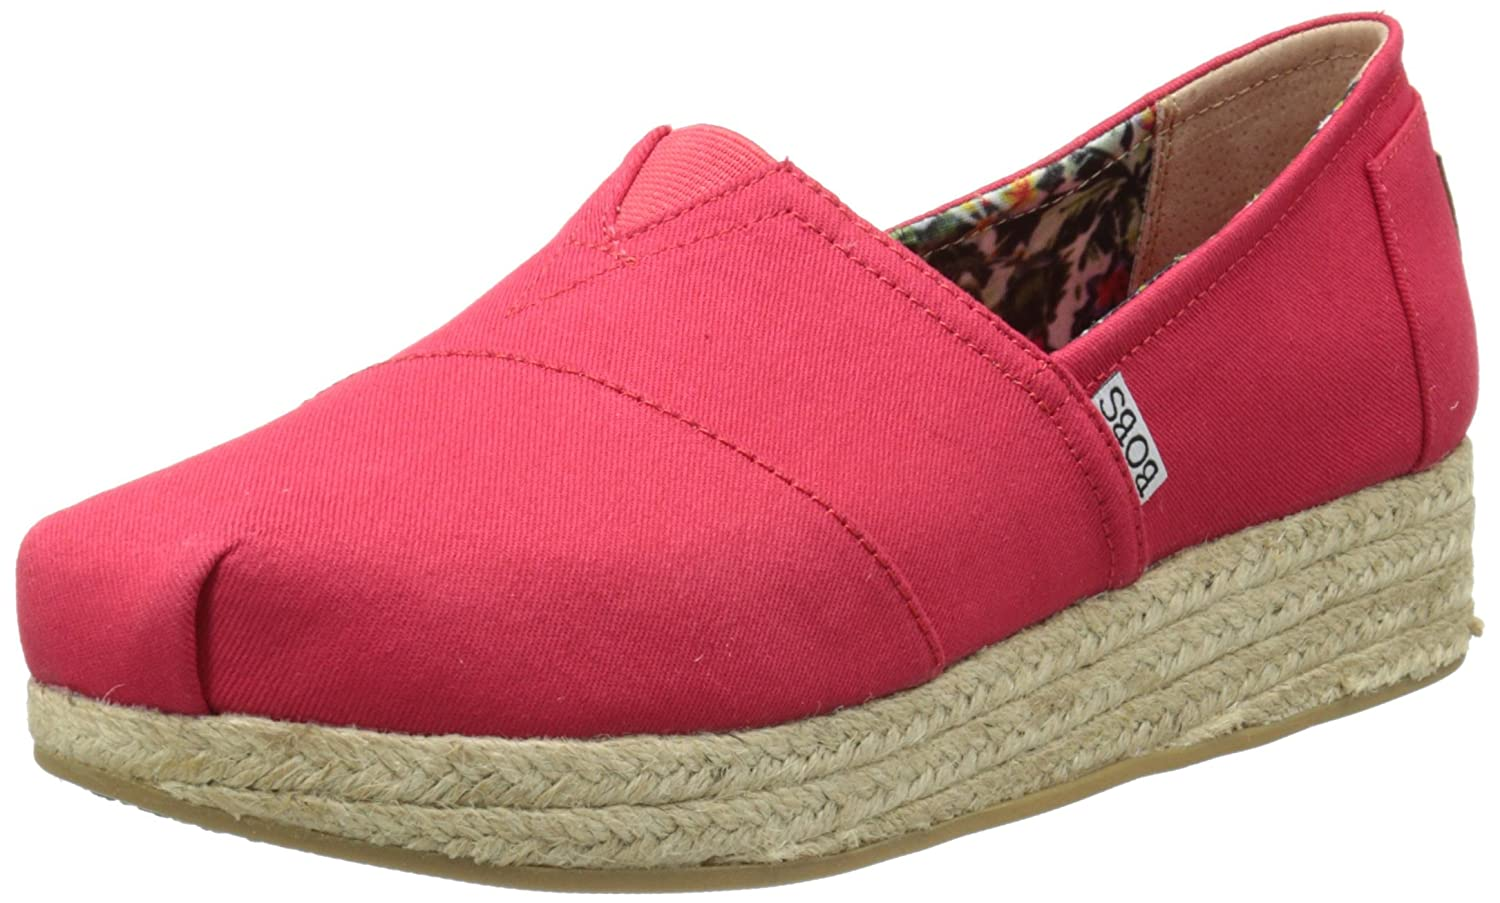 Skechers Damen Highlights Schuh  37 EU|Rot (Red)